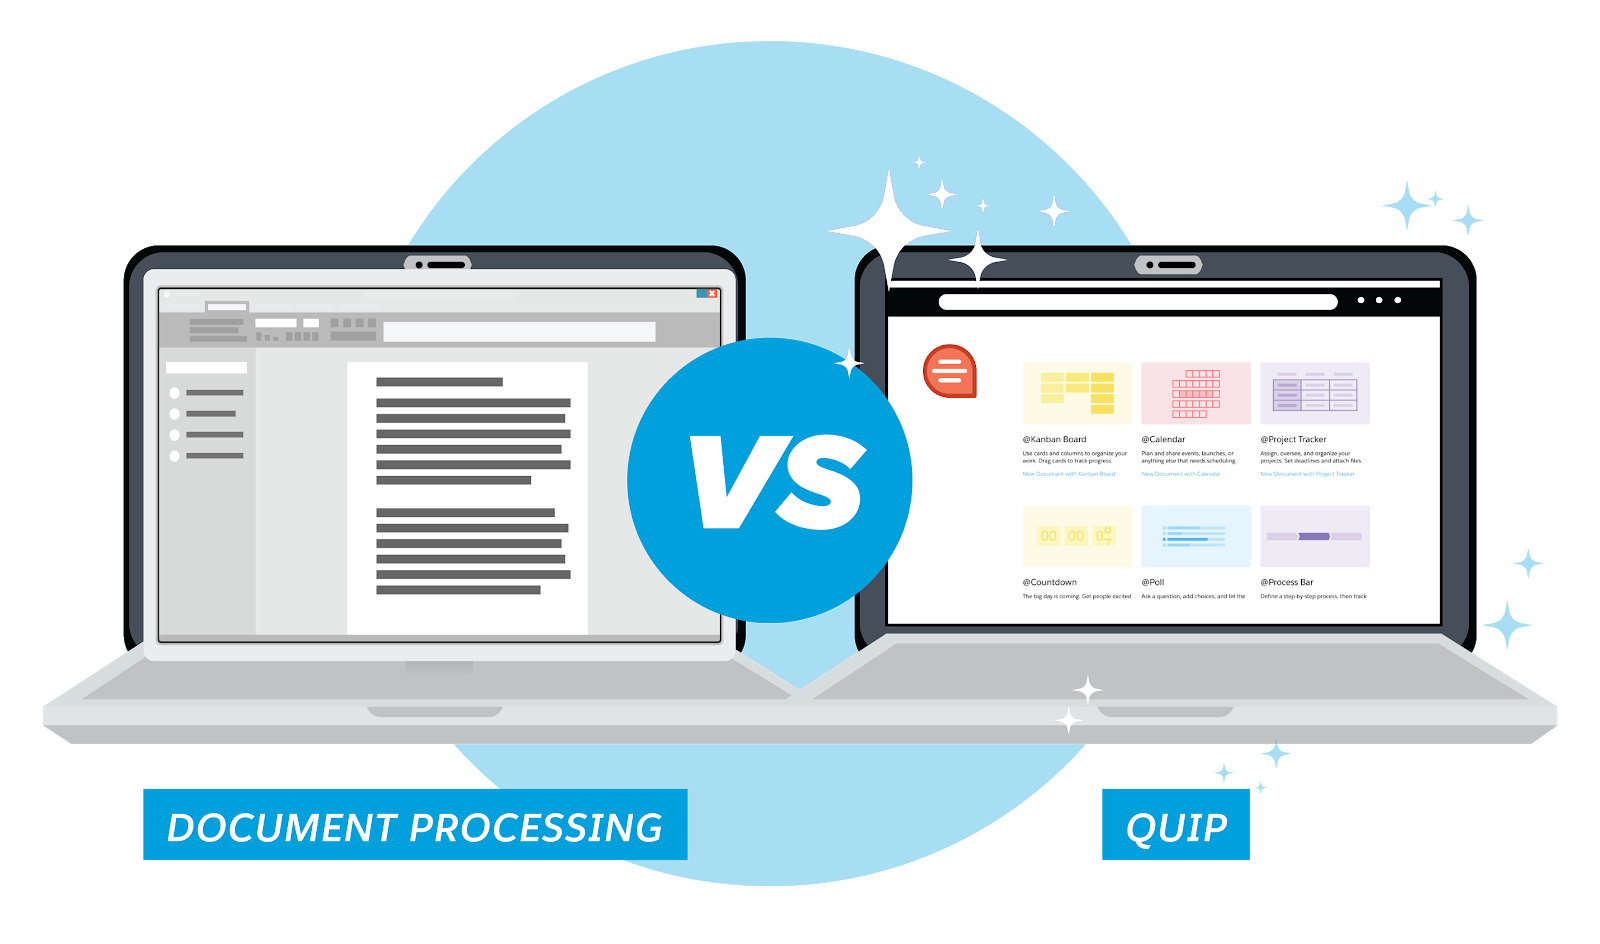 Two laptops, one with traditional document processing software and one with Quip, which is more colorful, modular, and user-friendly.